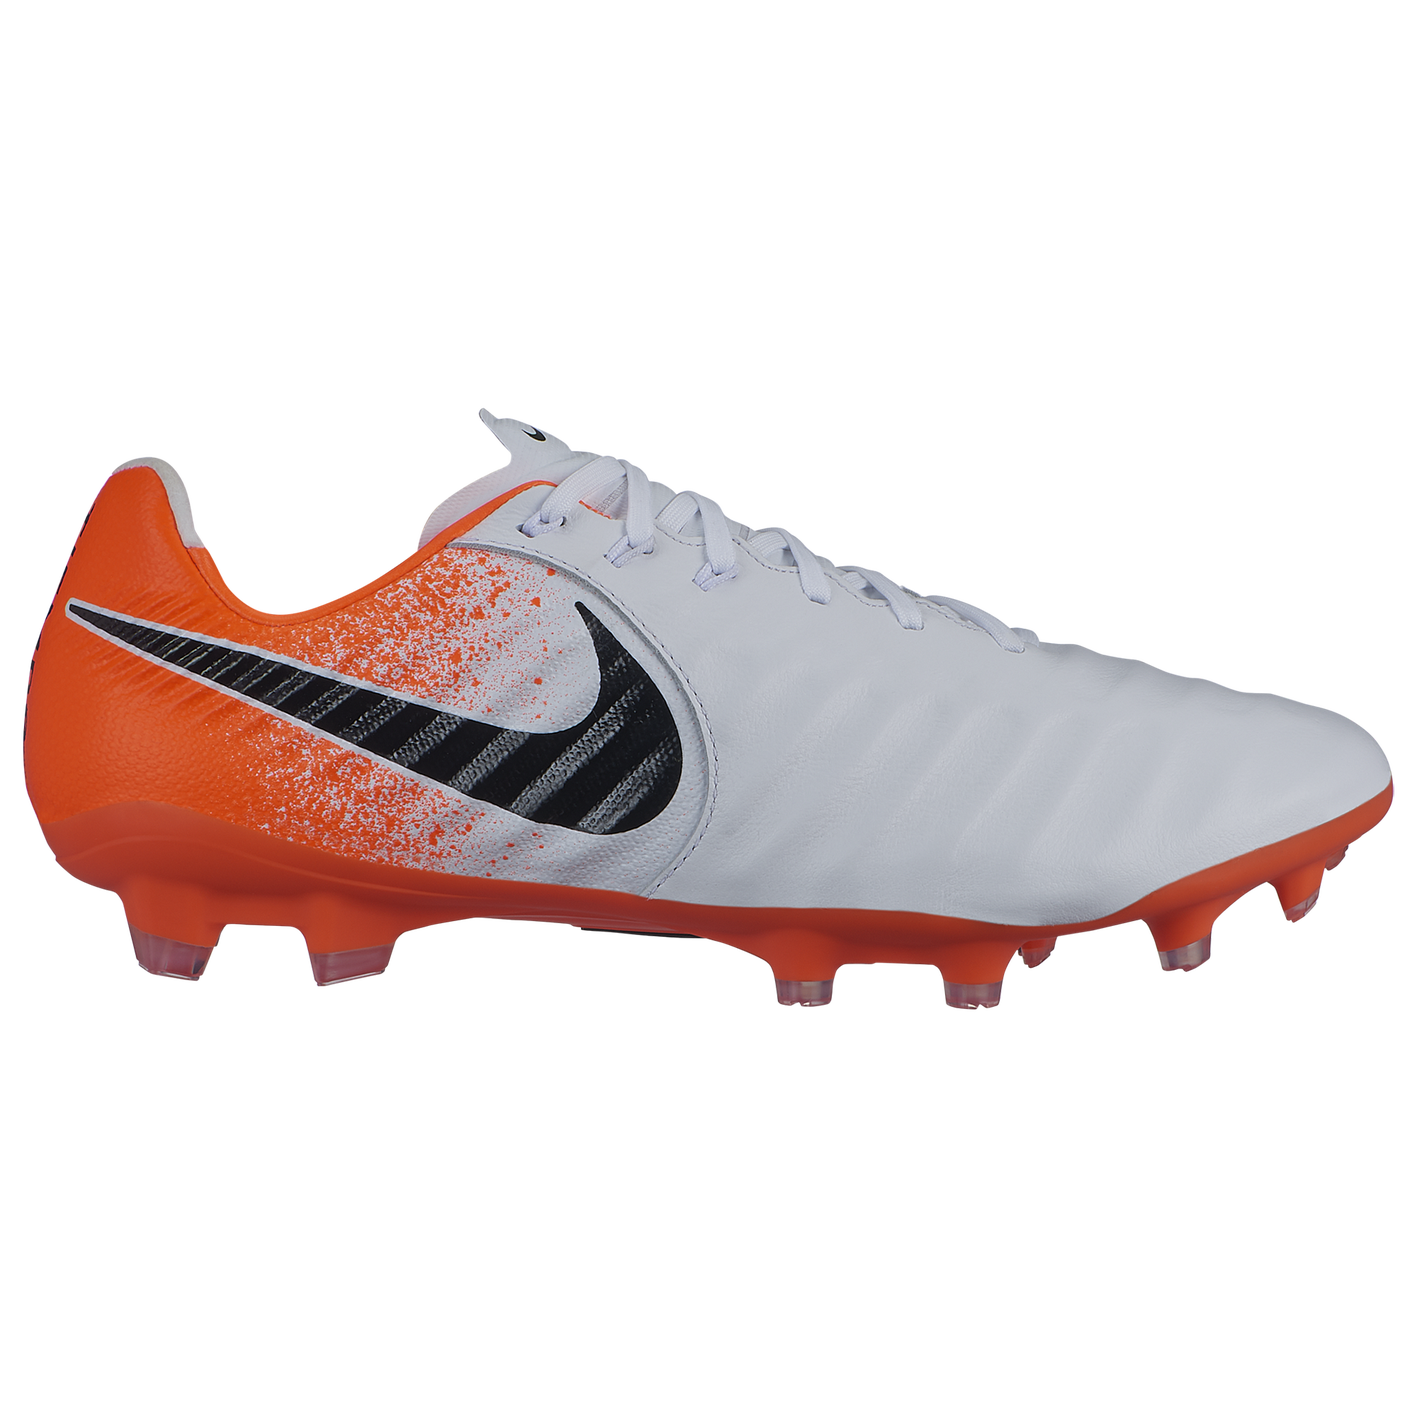 f1b2c45fd Nike Tiempo Legend 7 Pro FG - Men s - Soccer - Shoes - White Black ...